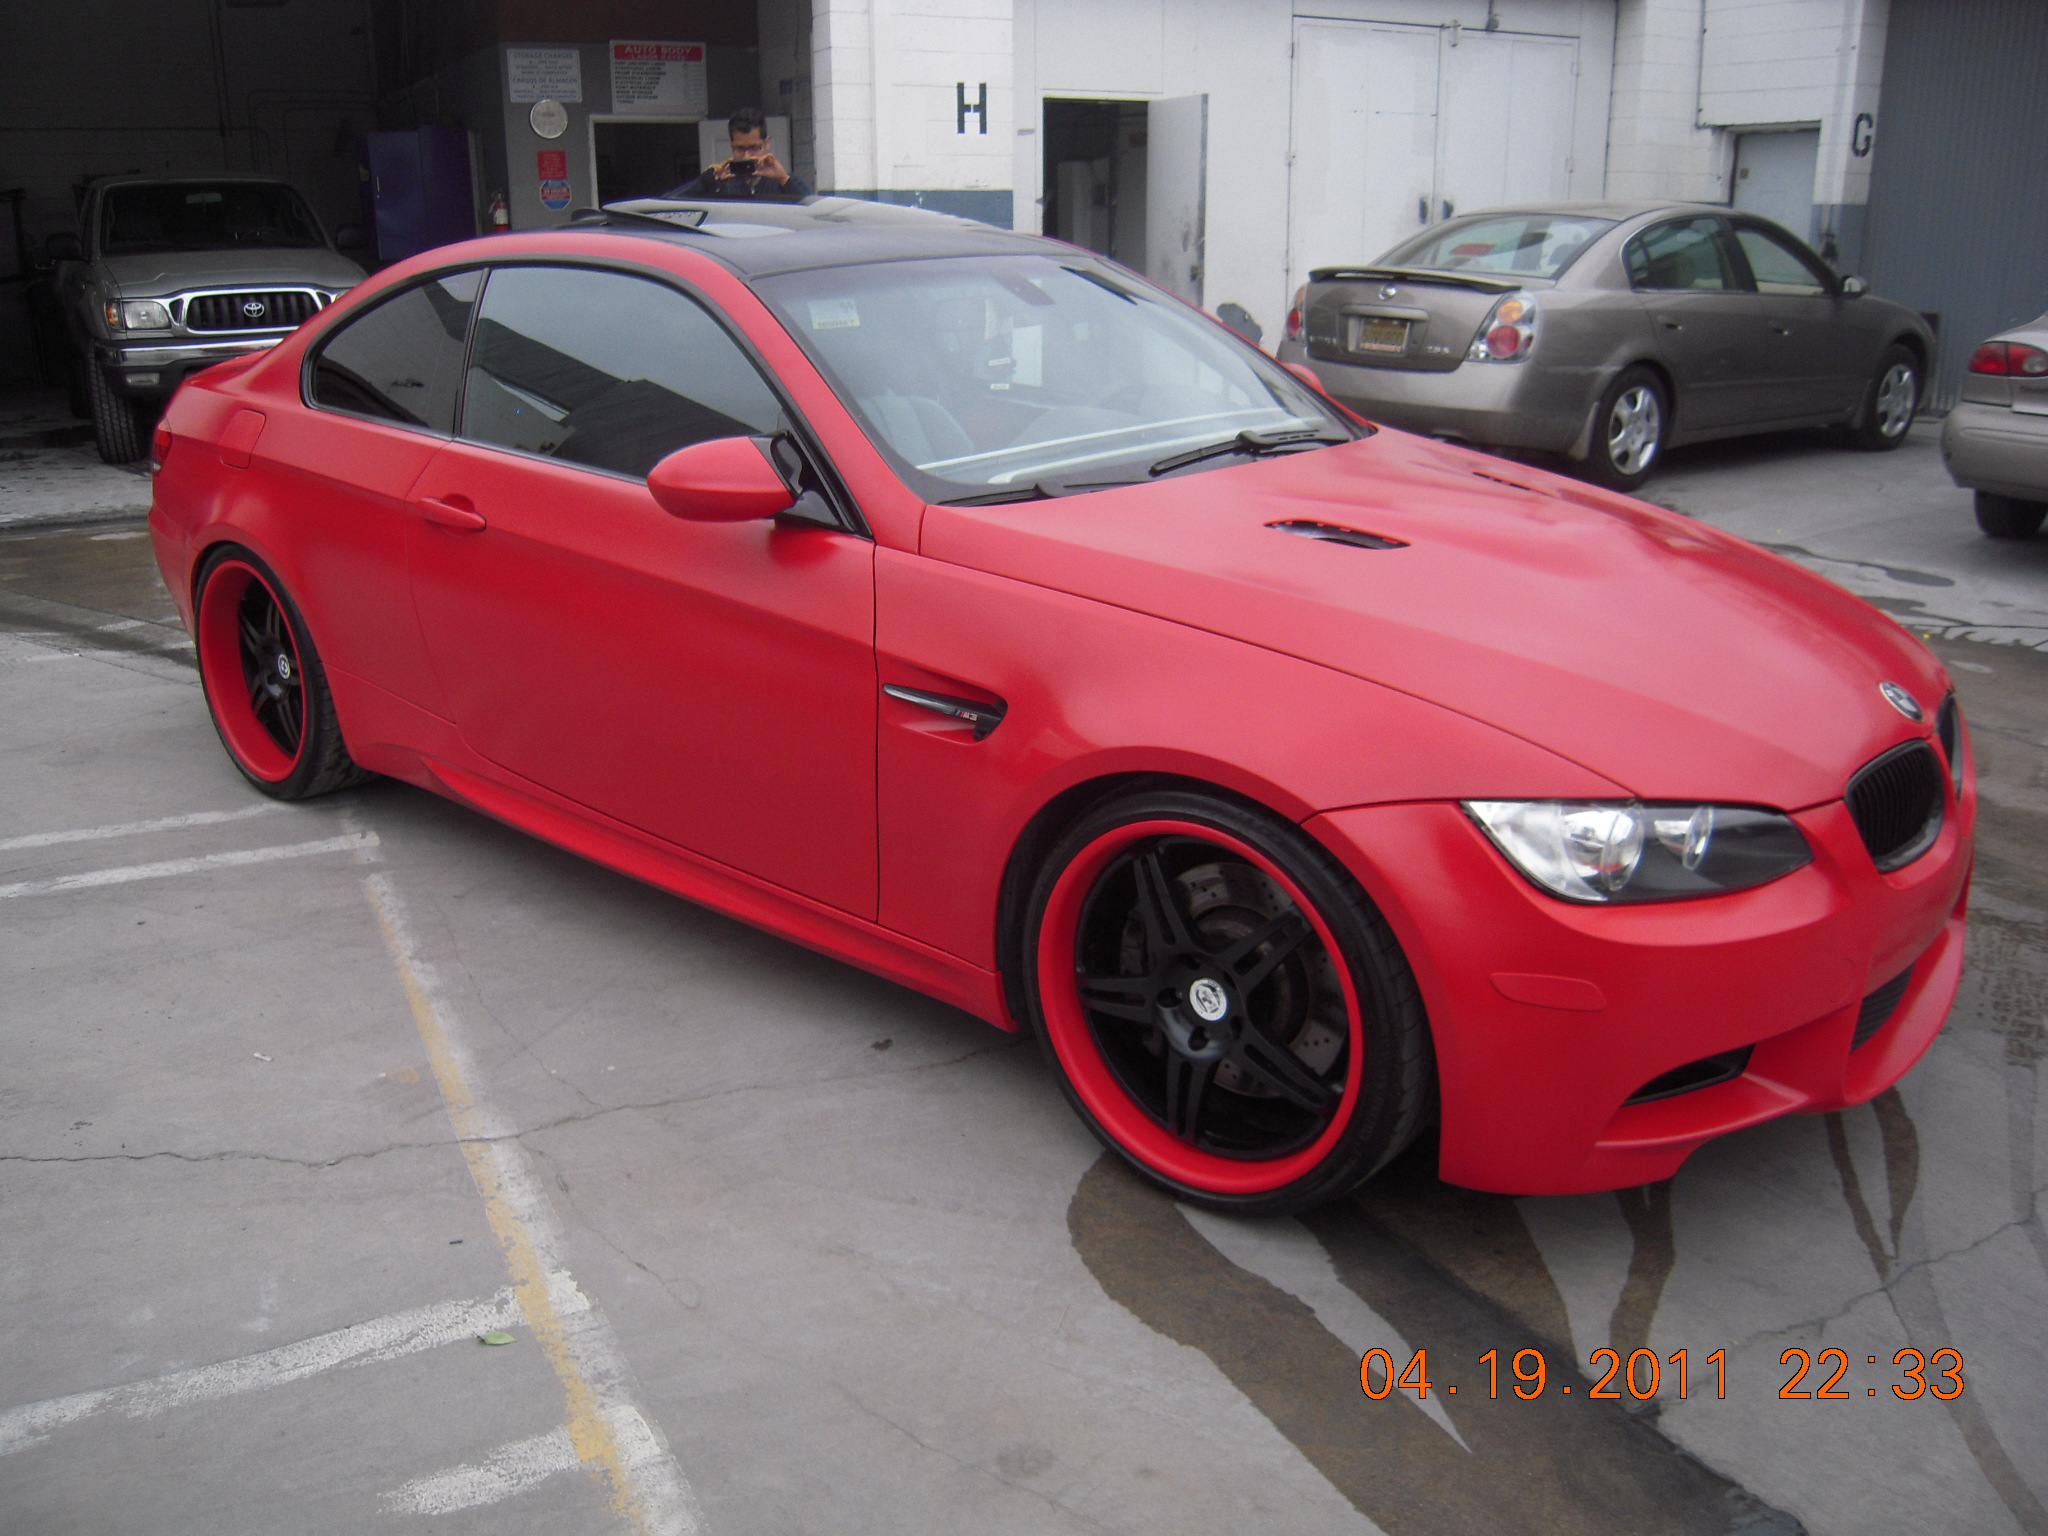 West Coast Body And Paint Red 2008 Bmw M3 Matte 16 West Coast Body And Paint Van Nuys Ca Collision Repair Auto Body Repair Paint Shop